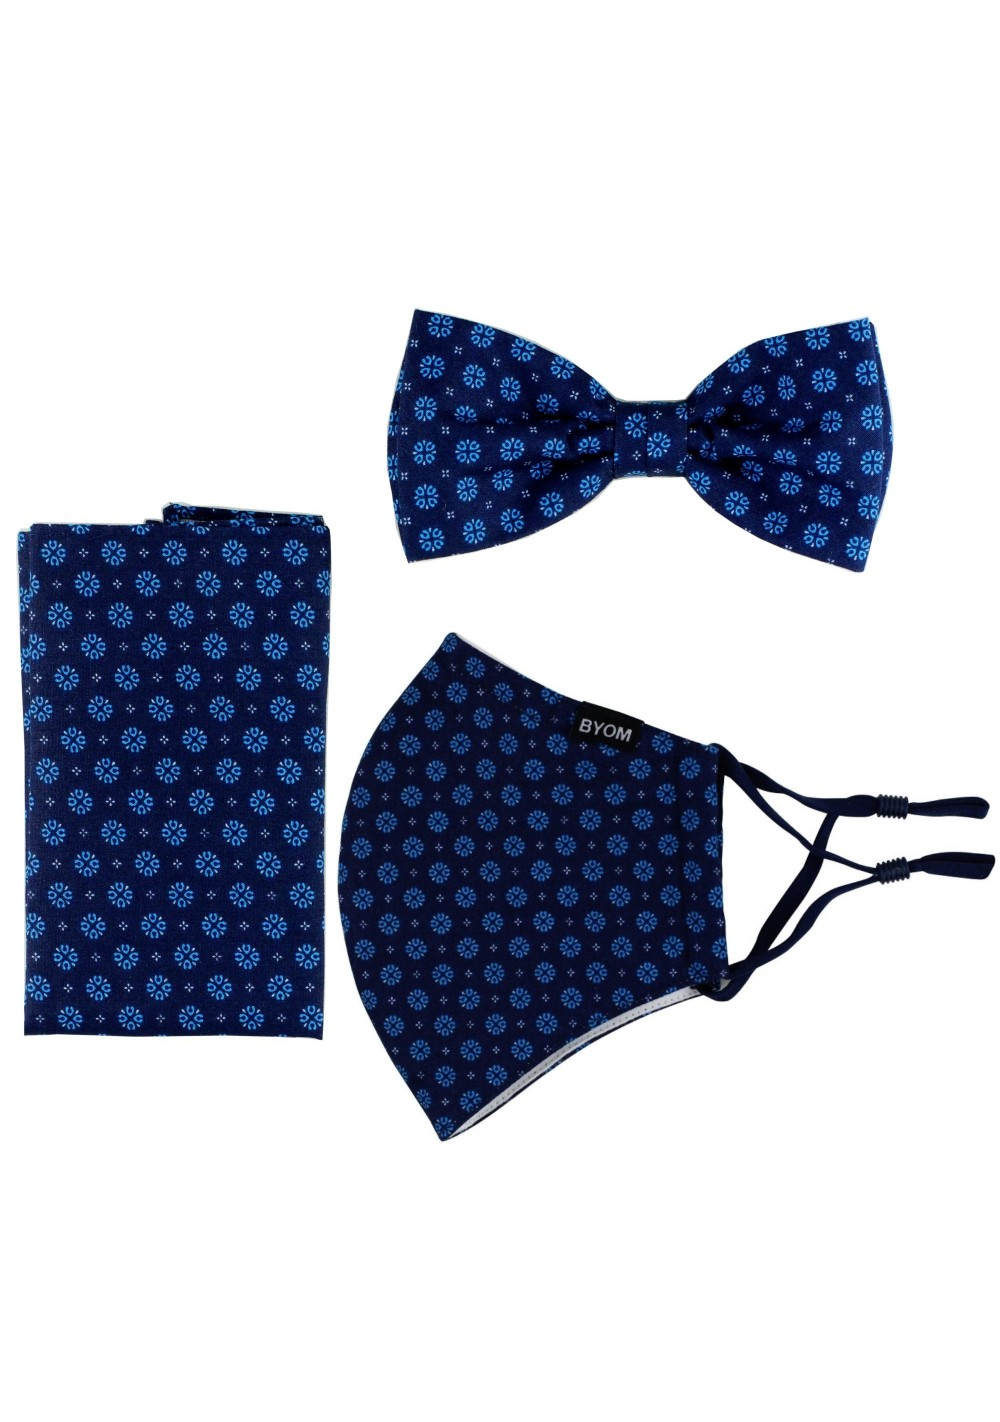 3-piece Bow Tie and Face Mask Set in Blues